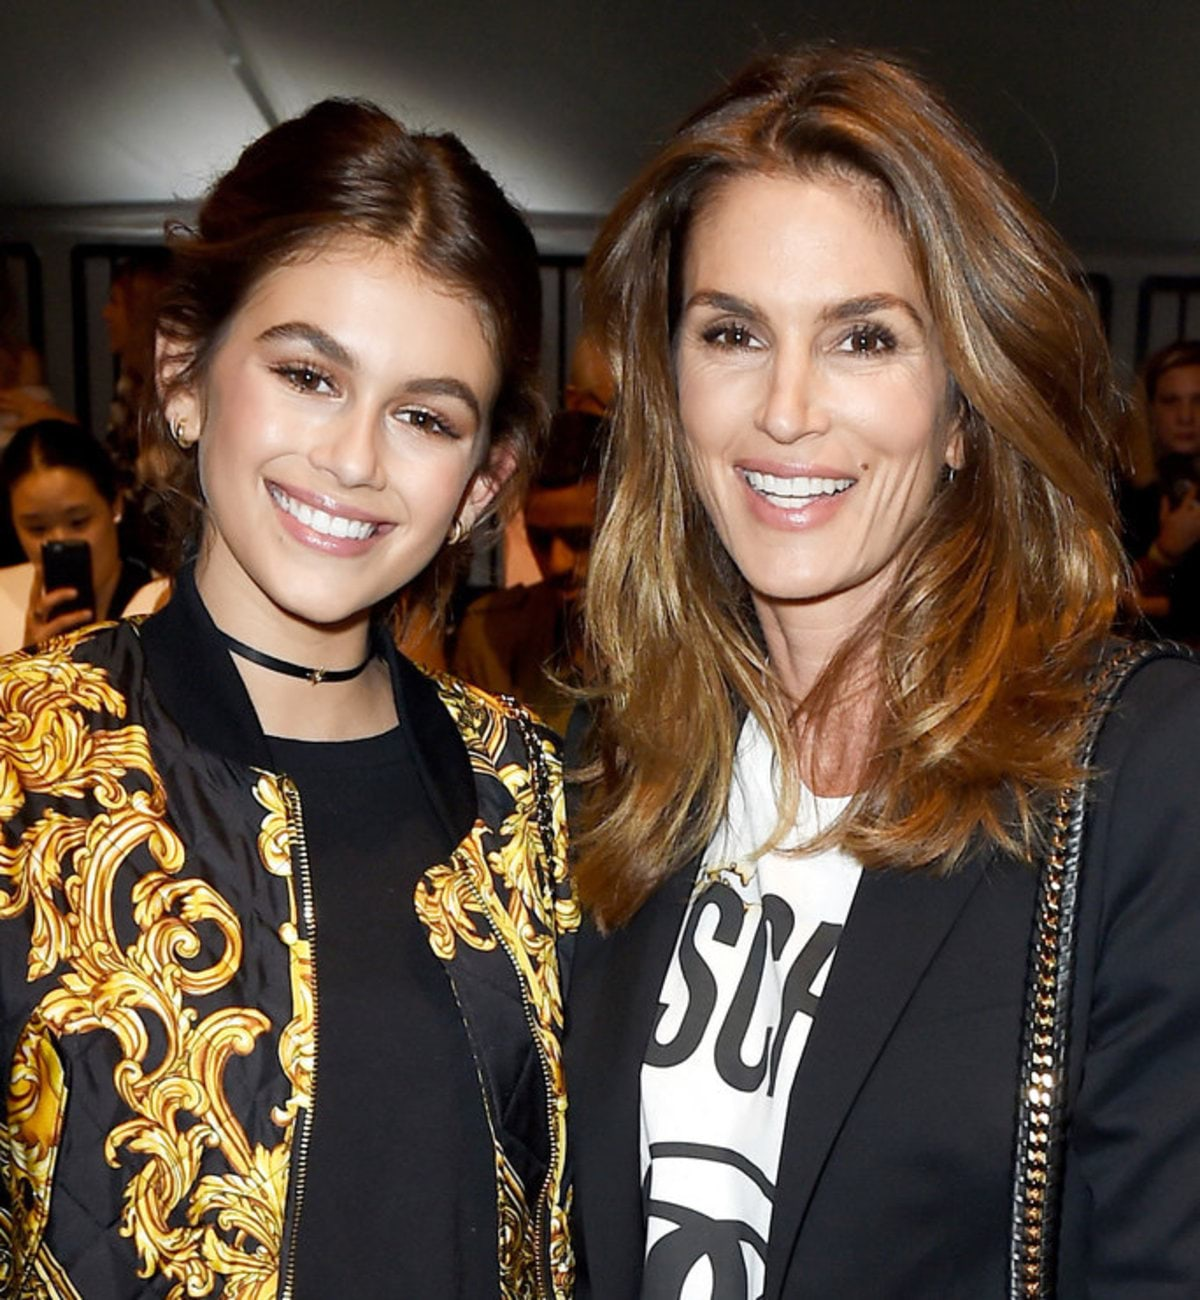 LOS ANGELES, CA - JUNE 10: Model Cindy Crawford (R) and her daughter Kaia Jordan Gerber attend the Moschino Spring/Summer 17 Menswear and Women's Resort Collection during MADE LA at L.A. Live Event Deck on June 10, 2016 in Los Angeles, California. (Photo by Kevin Winter/Getty Images)